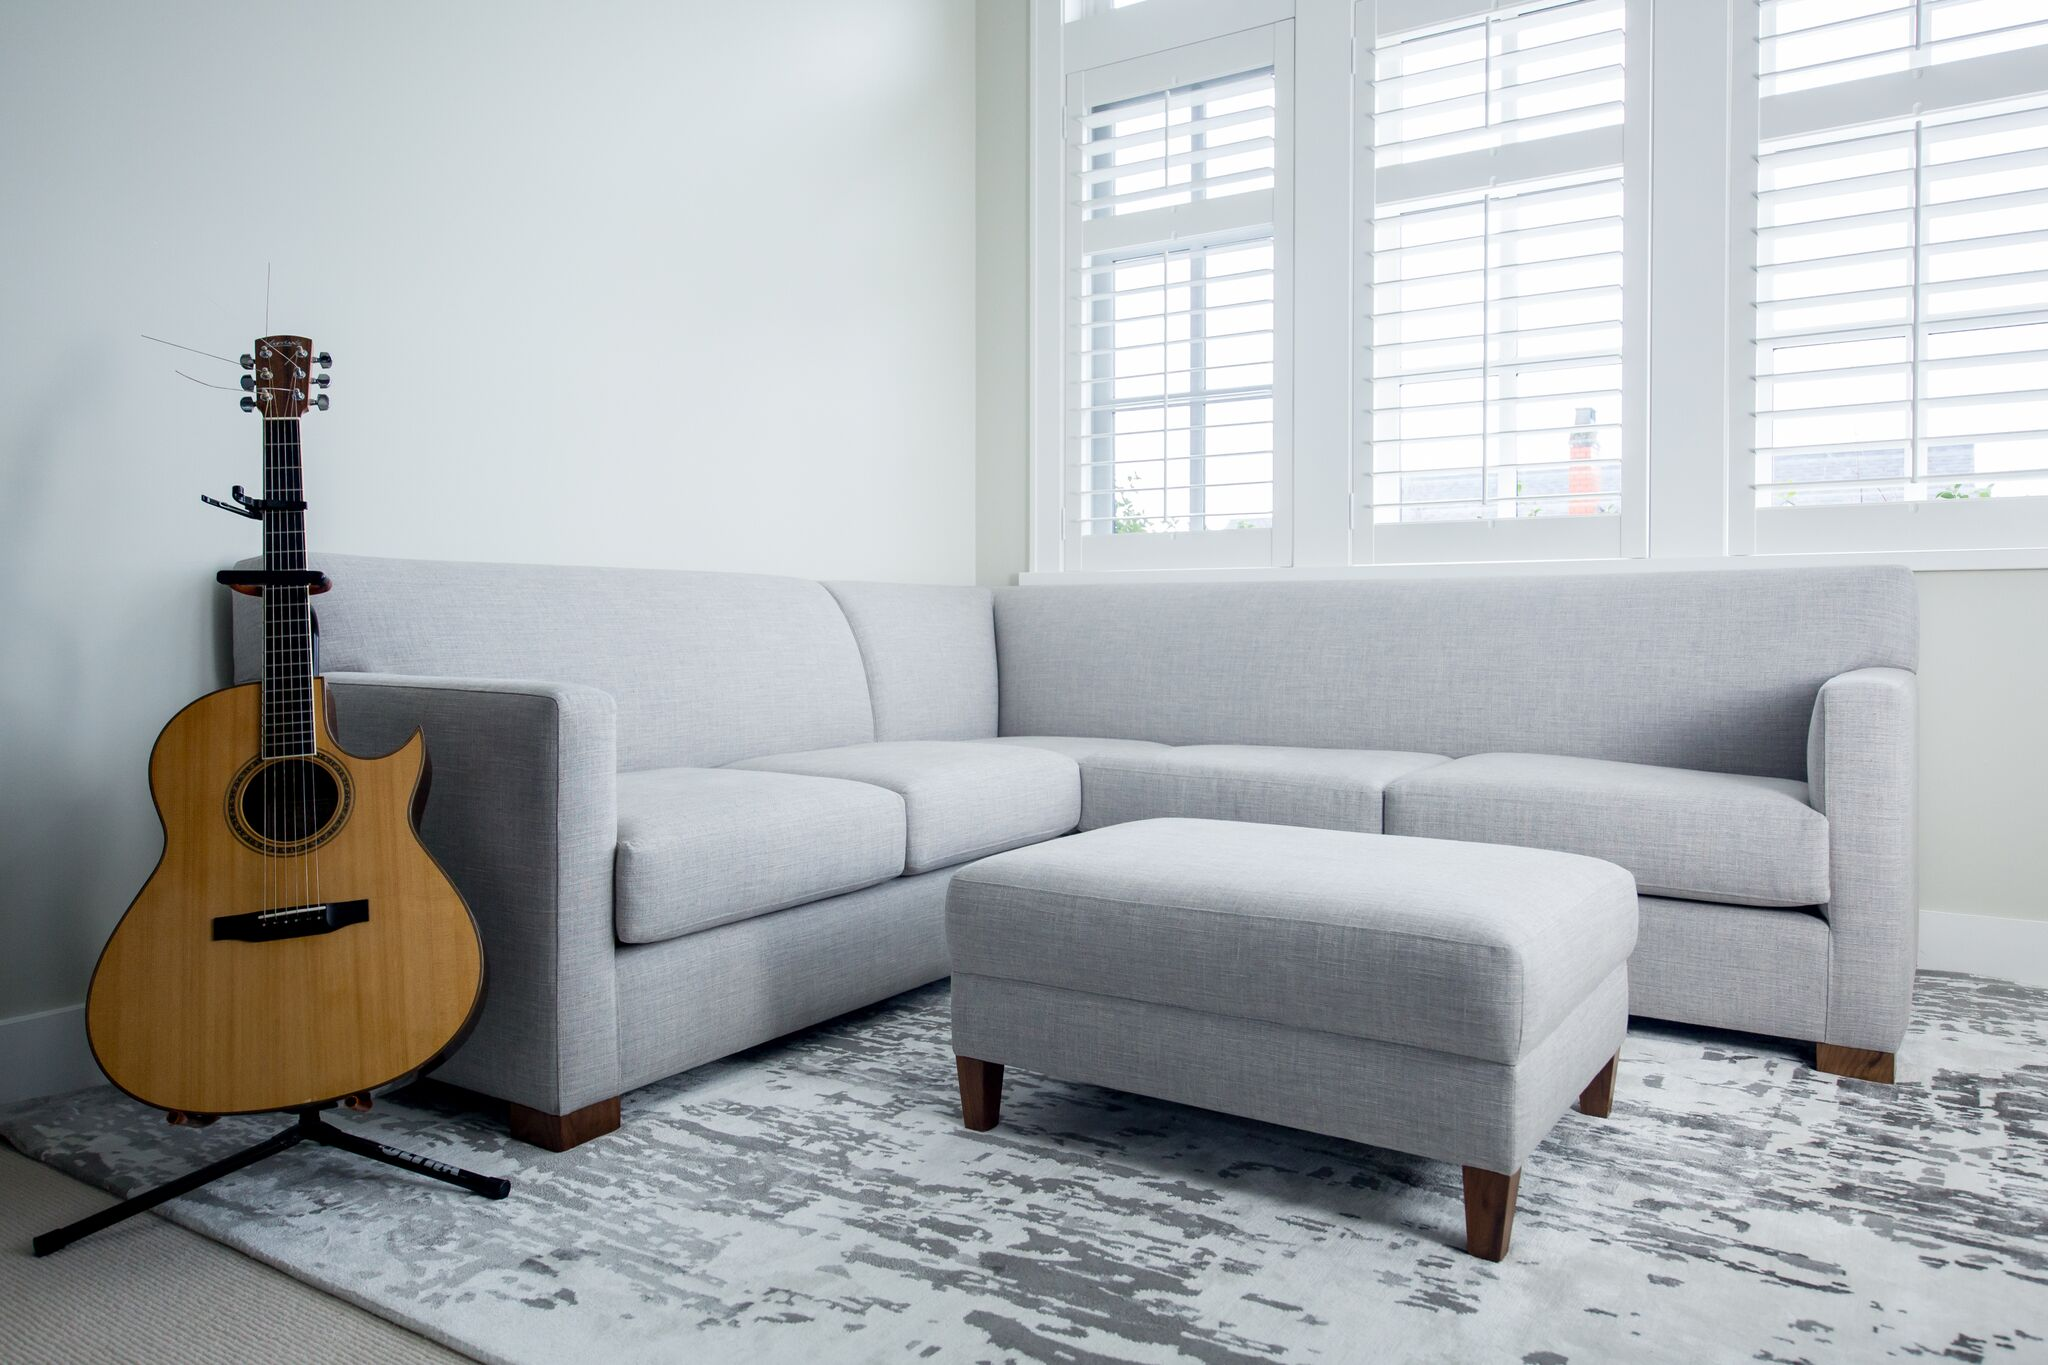 Bespoke sectional, specially designed to fit into a tiny apartment.